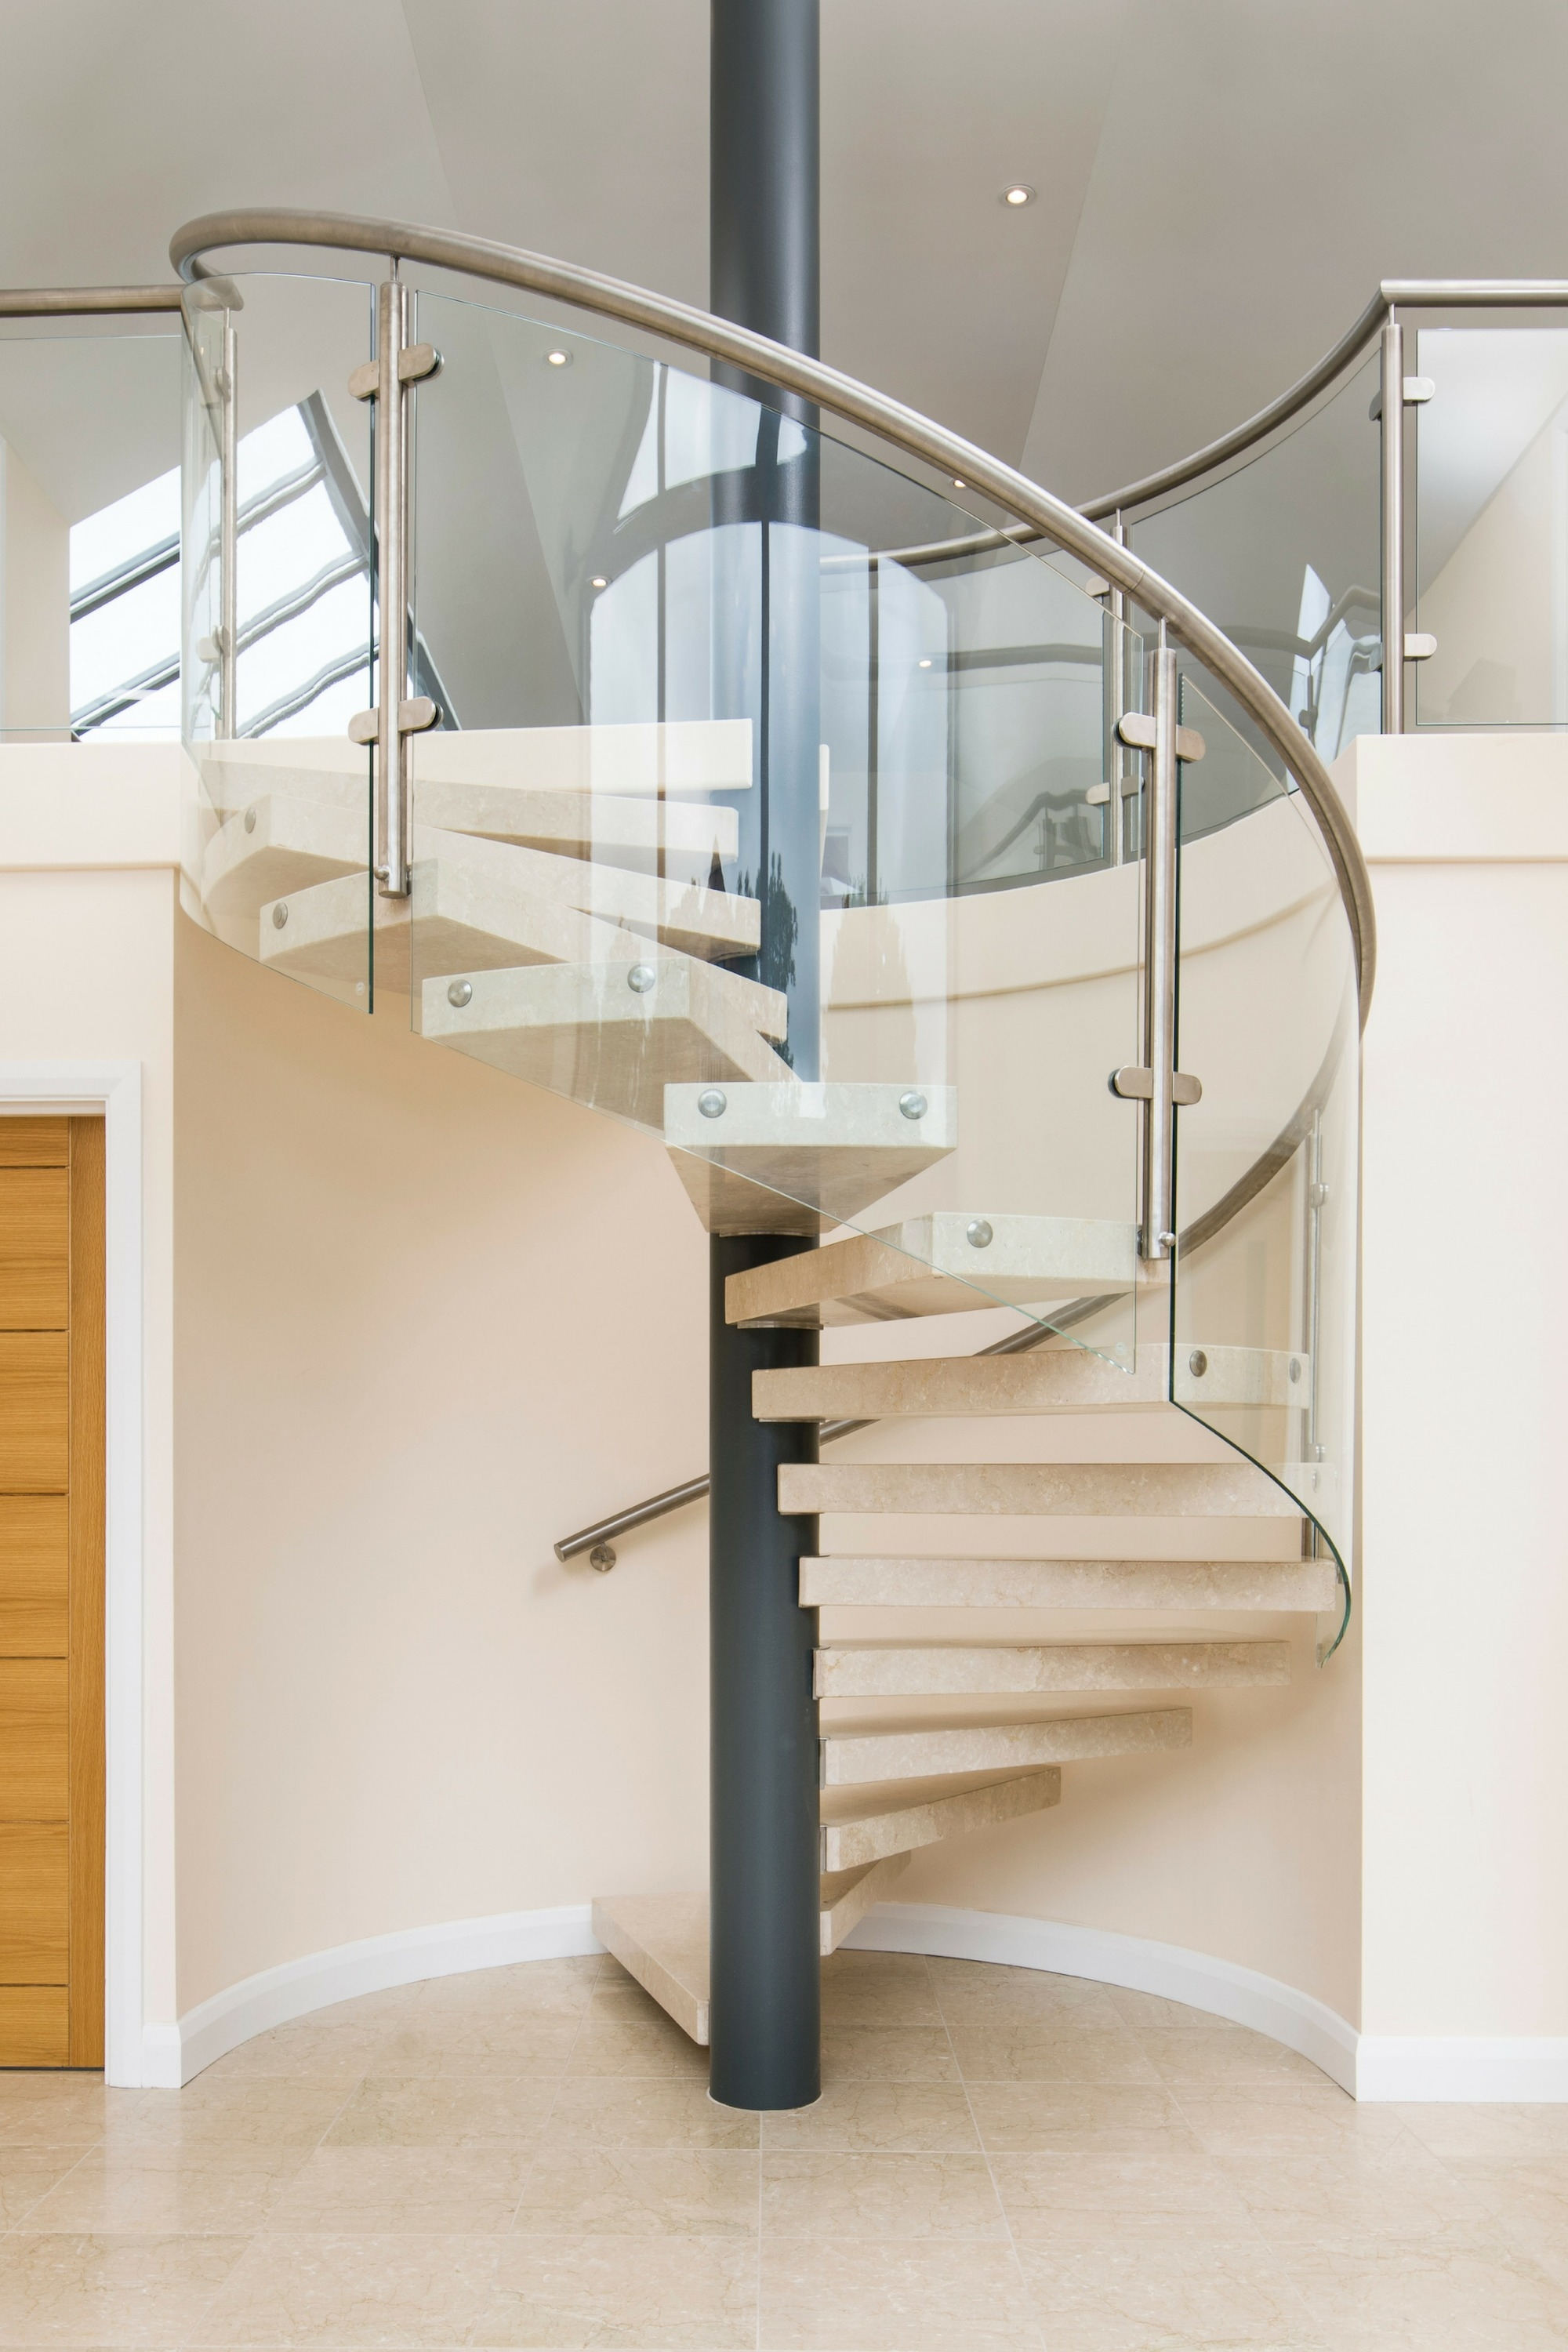 Spiral Staircases For Sale Uk Made To Measure   Circular Stairs For Sale   Rustic   Ornate   Interior   Shop   Slide